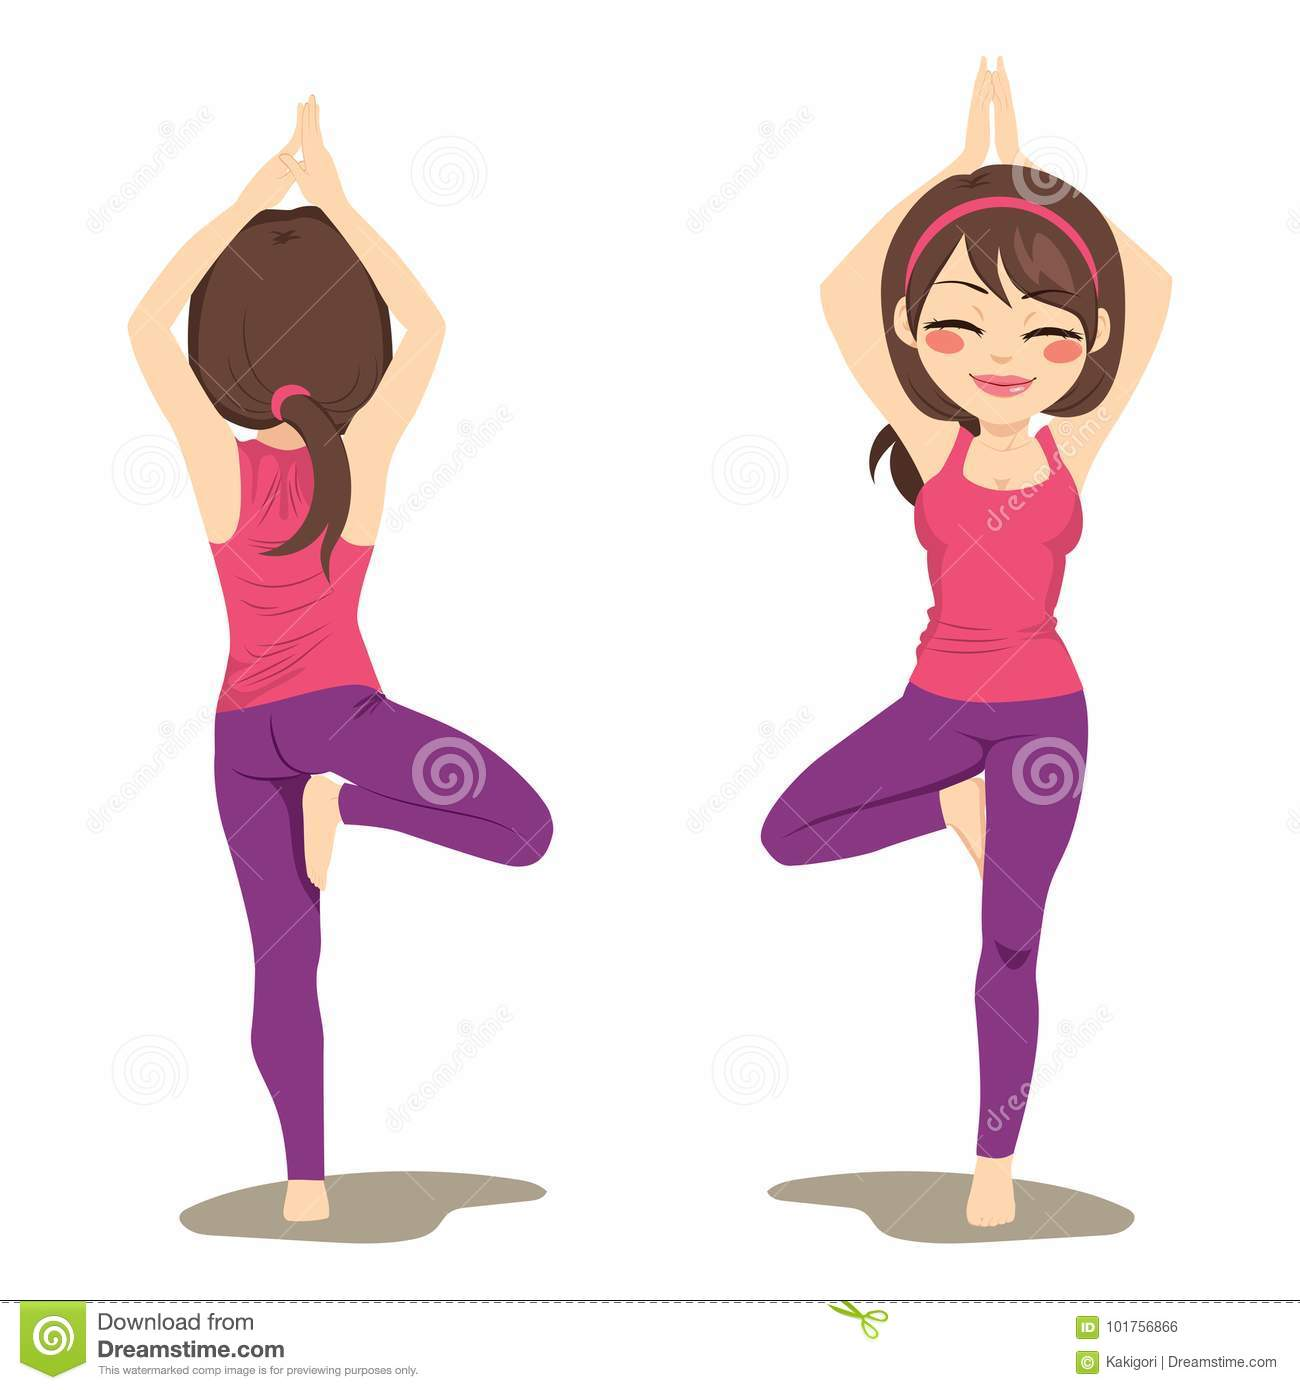 Tree Pose Stock Illustrations 4 294 Tree Pose Stock Illustrations Vectors Clipart Dreamstime Polish your personal project or design with these cartoon tree transparent png images, make it even more personalized and more attractive. https www dreamstime com young woman exercising yoga tree pose front back view yoga tree pose image101756866